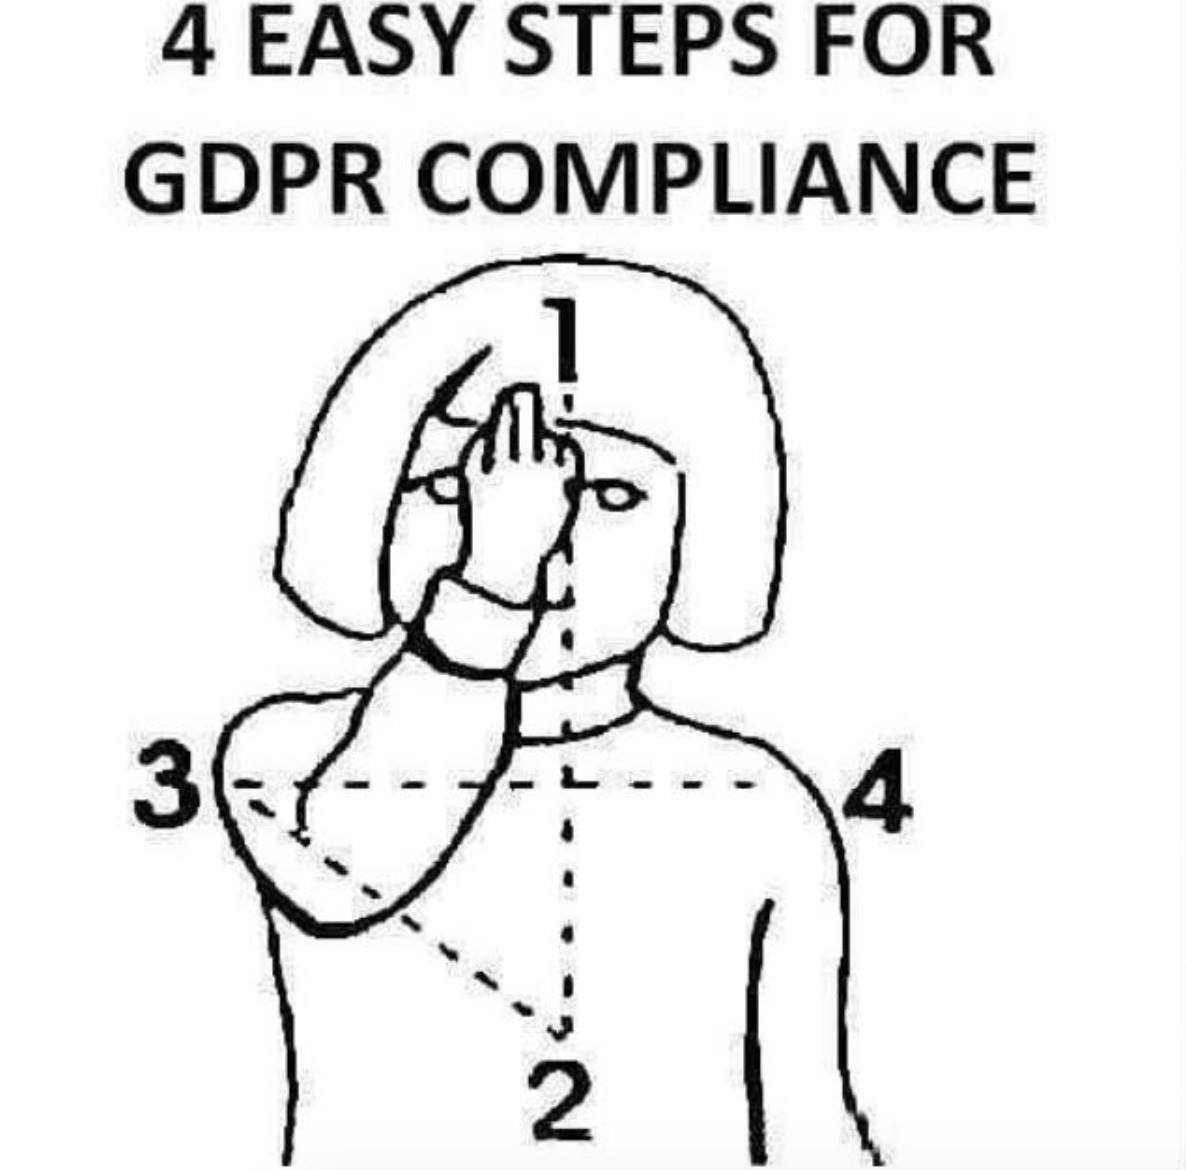 4 easy steps for GDPR compliance